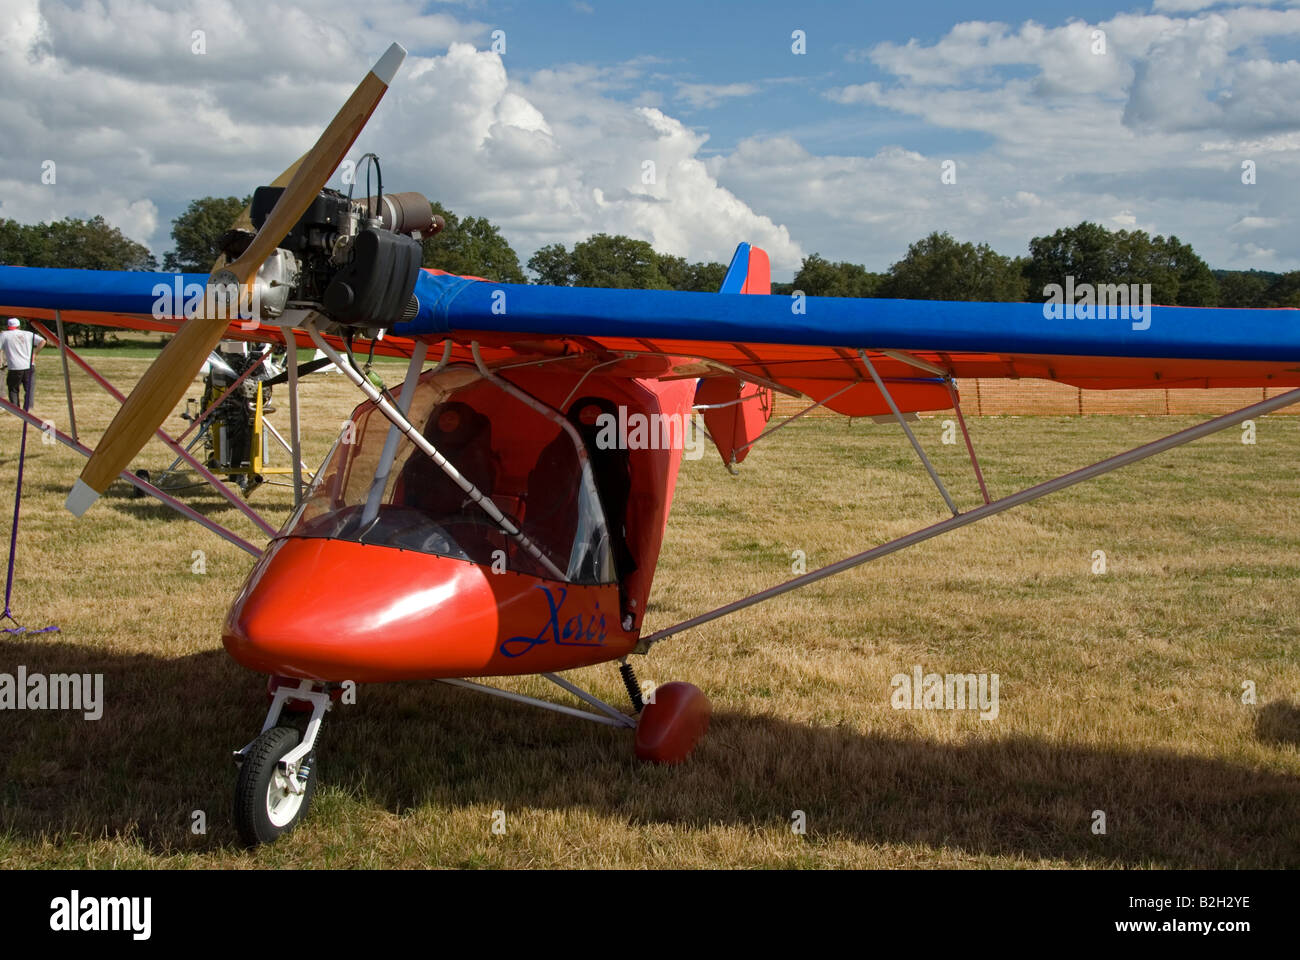 Stock photo of a single engined propellor driven light aircraft in a field - Stock Image